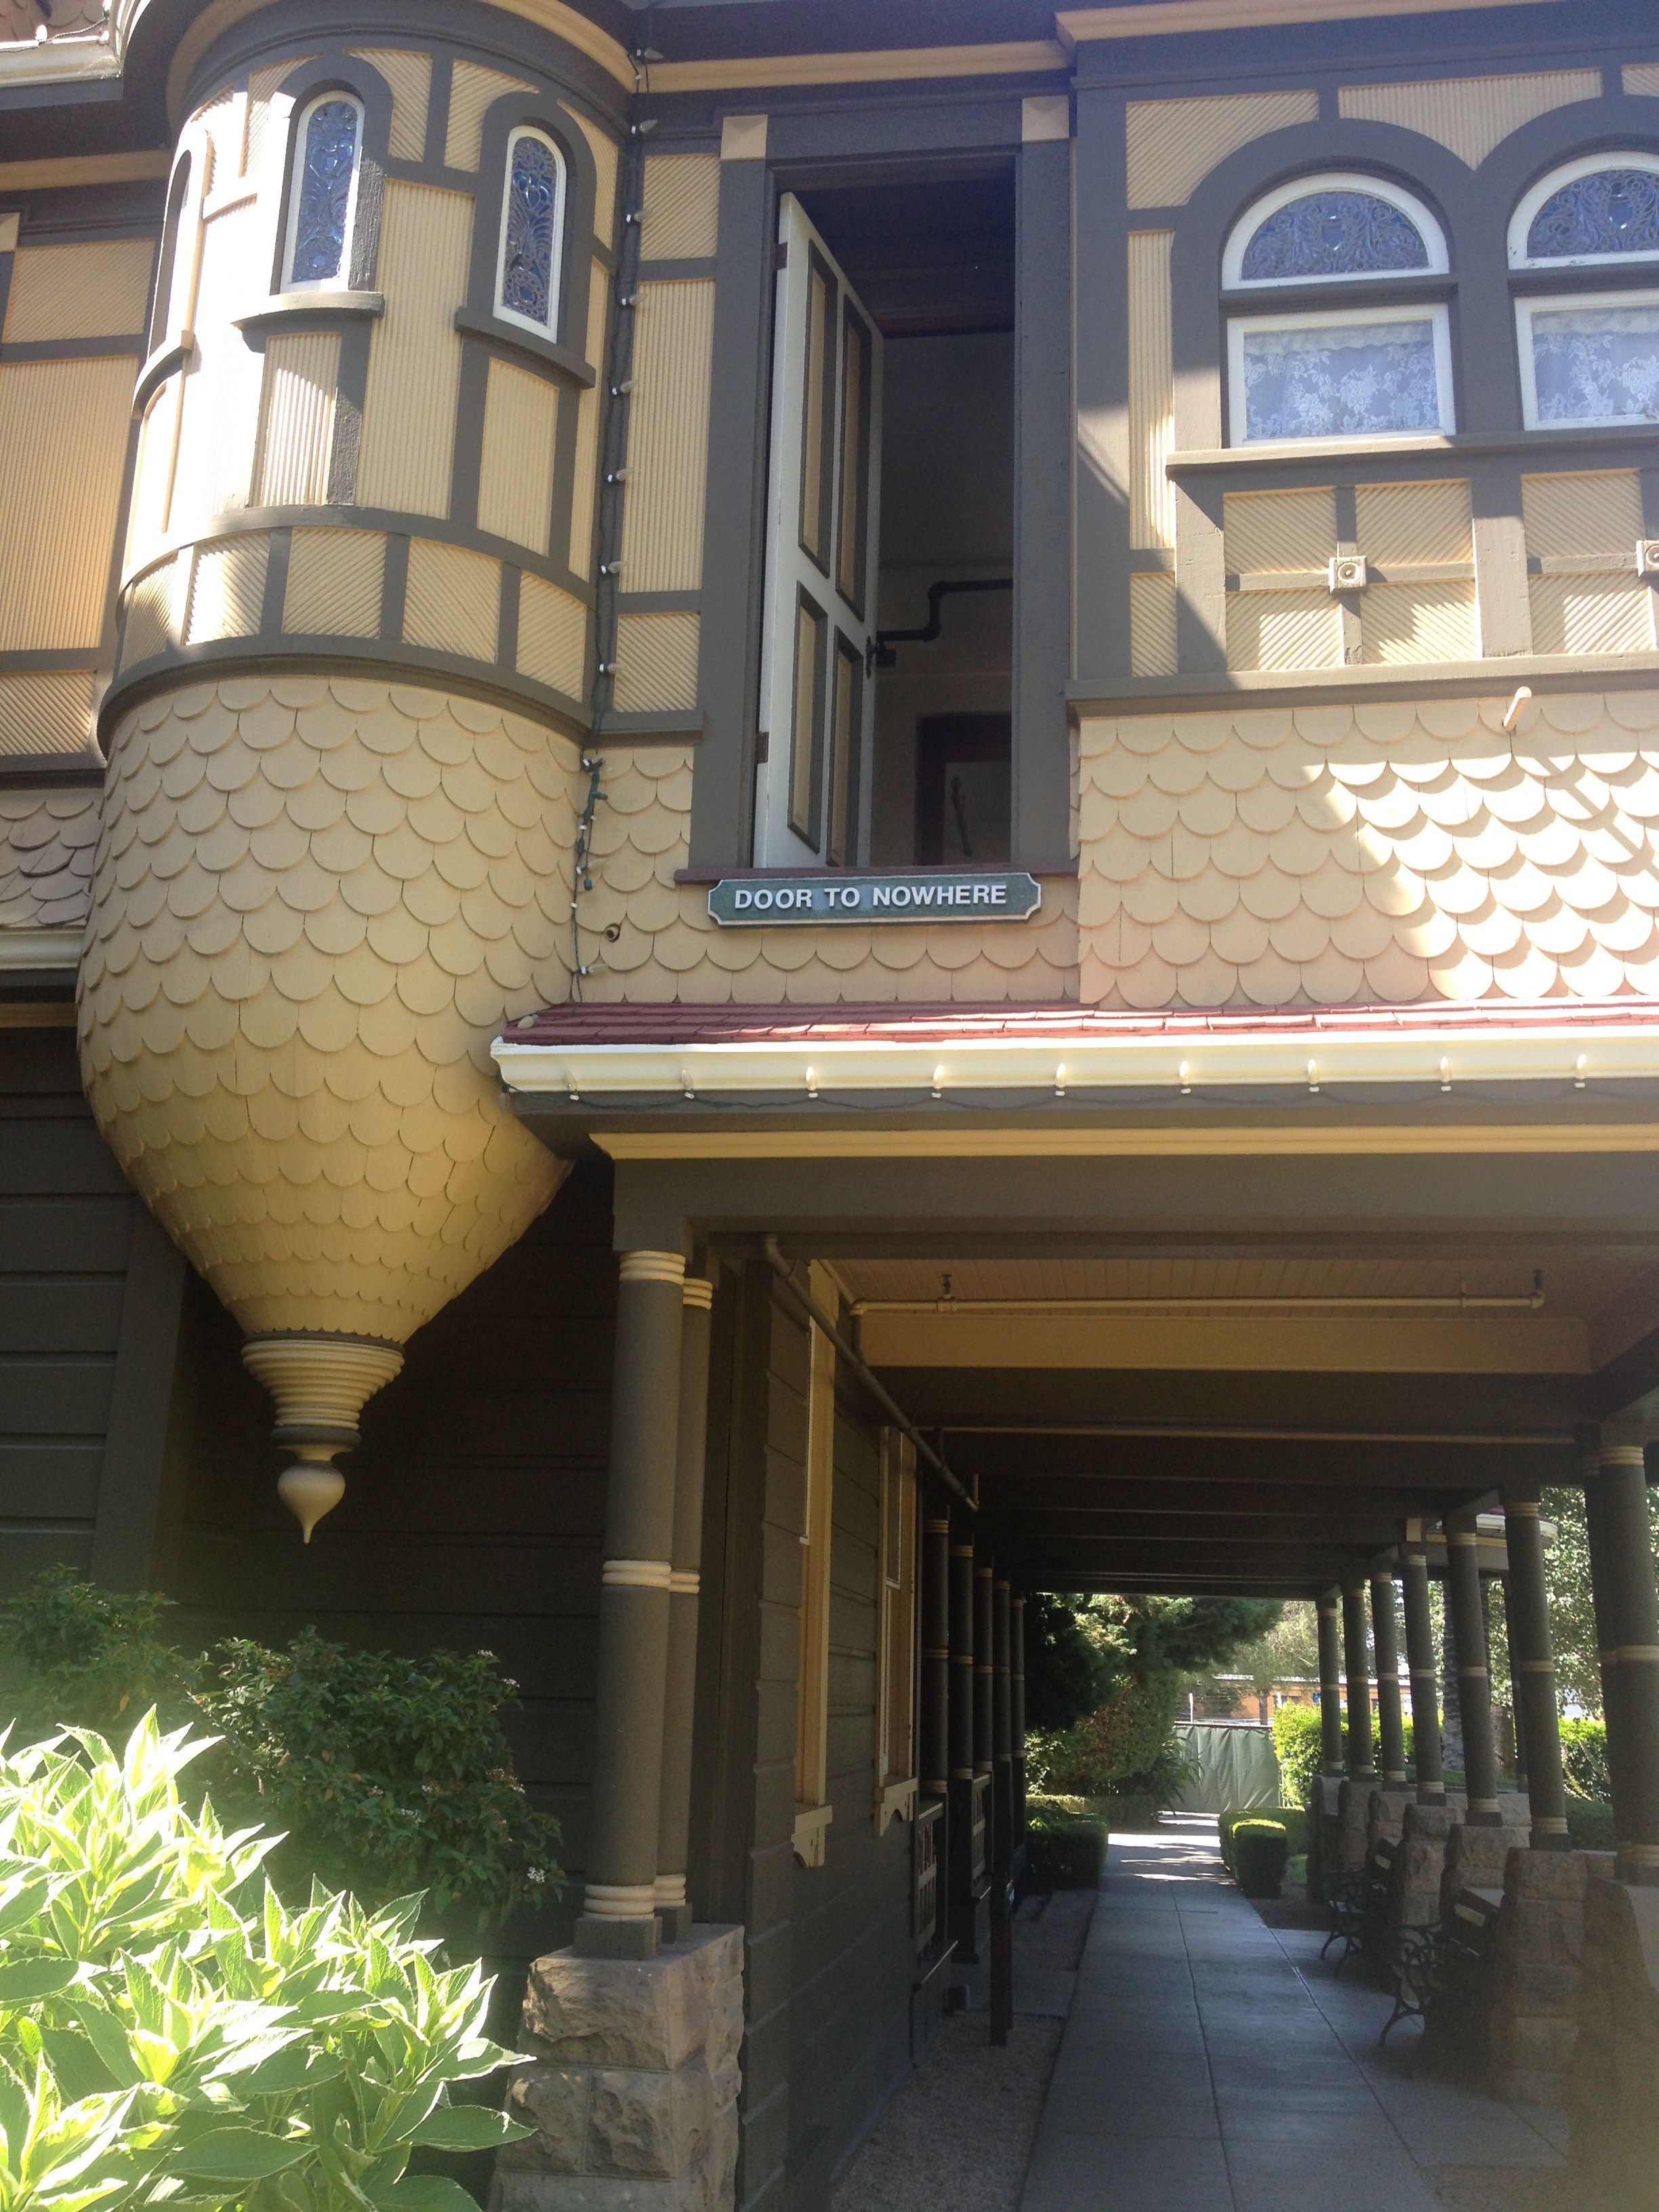 winchester mystery house | travel | pinterest | winchester mystery